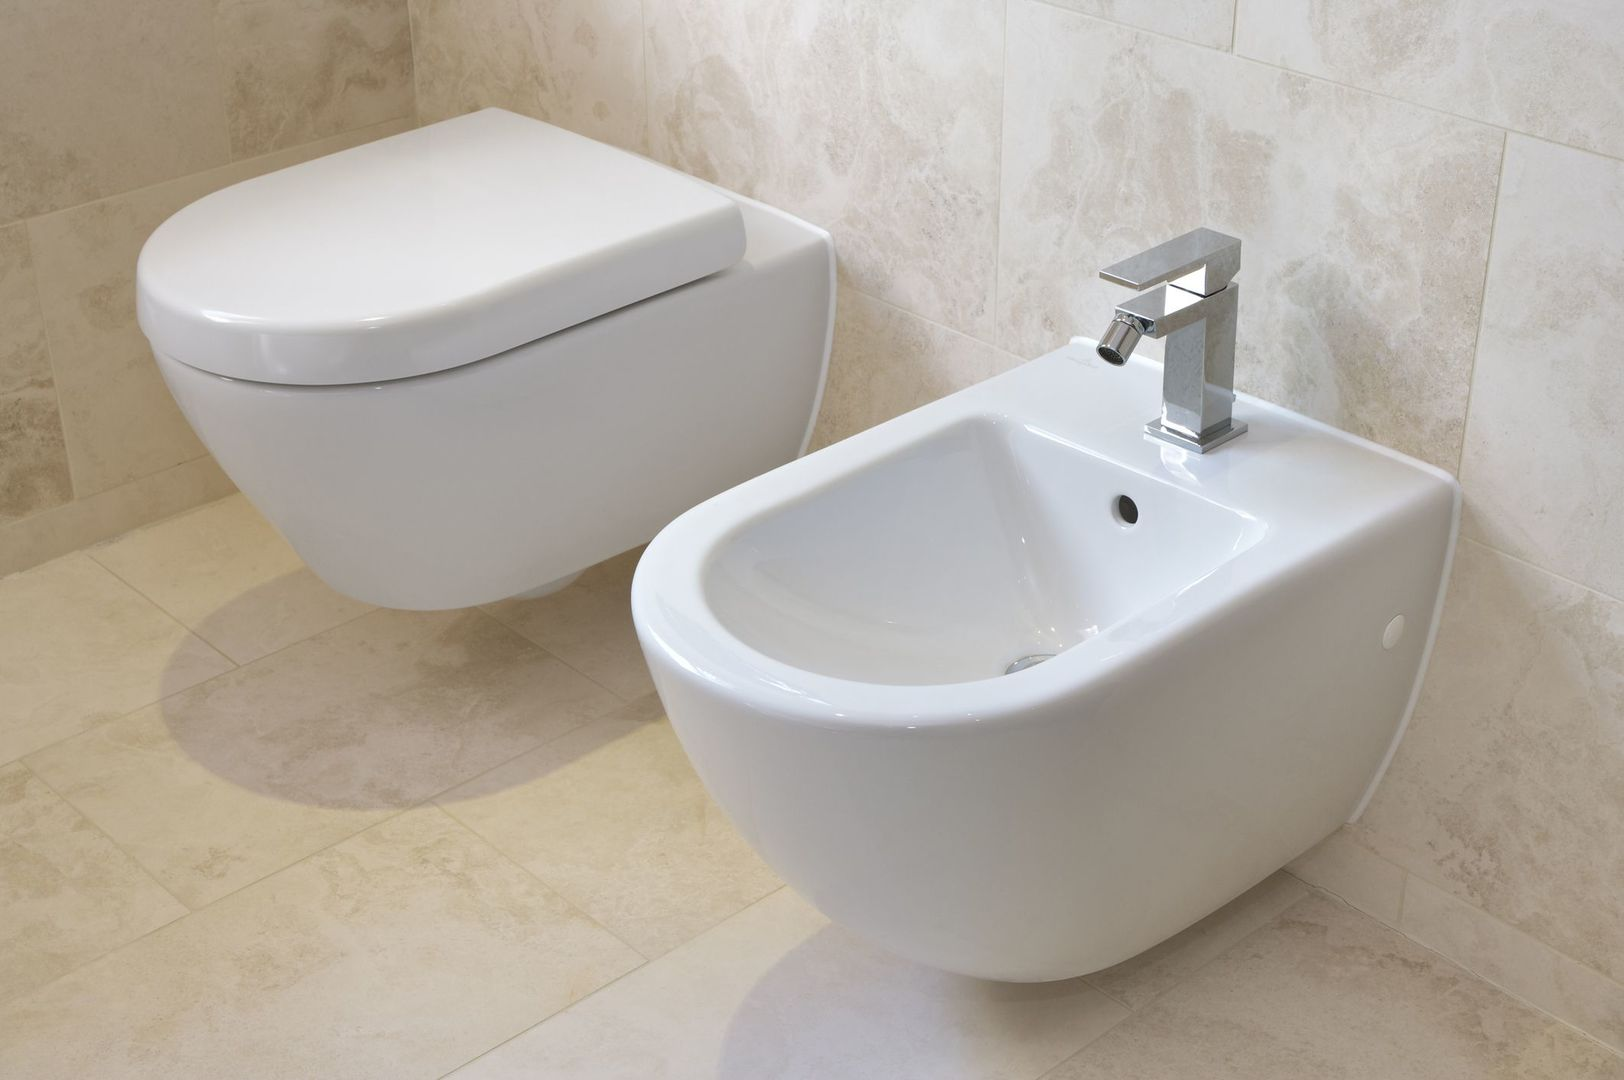 How to Use a Bidet Toilet Seat Article - ArticleTed -  News and Articles